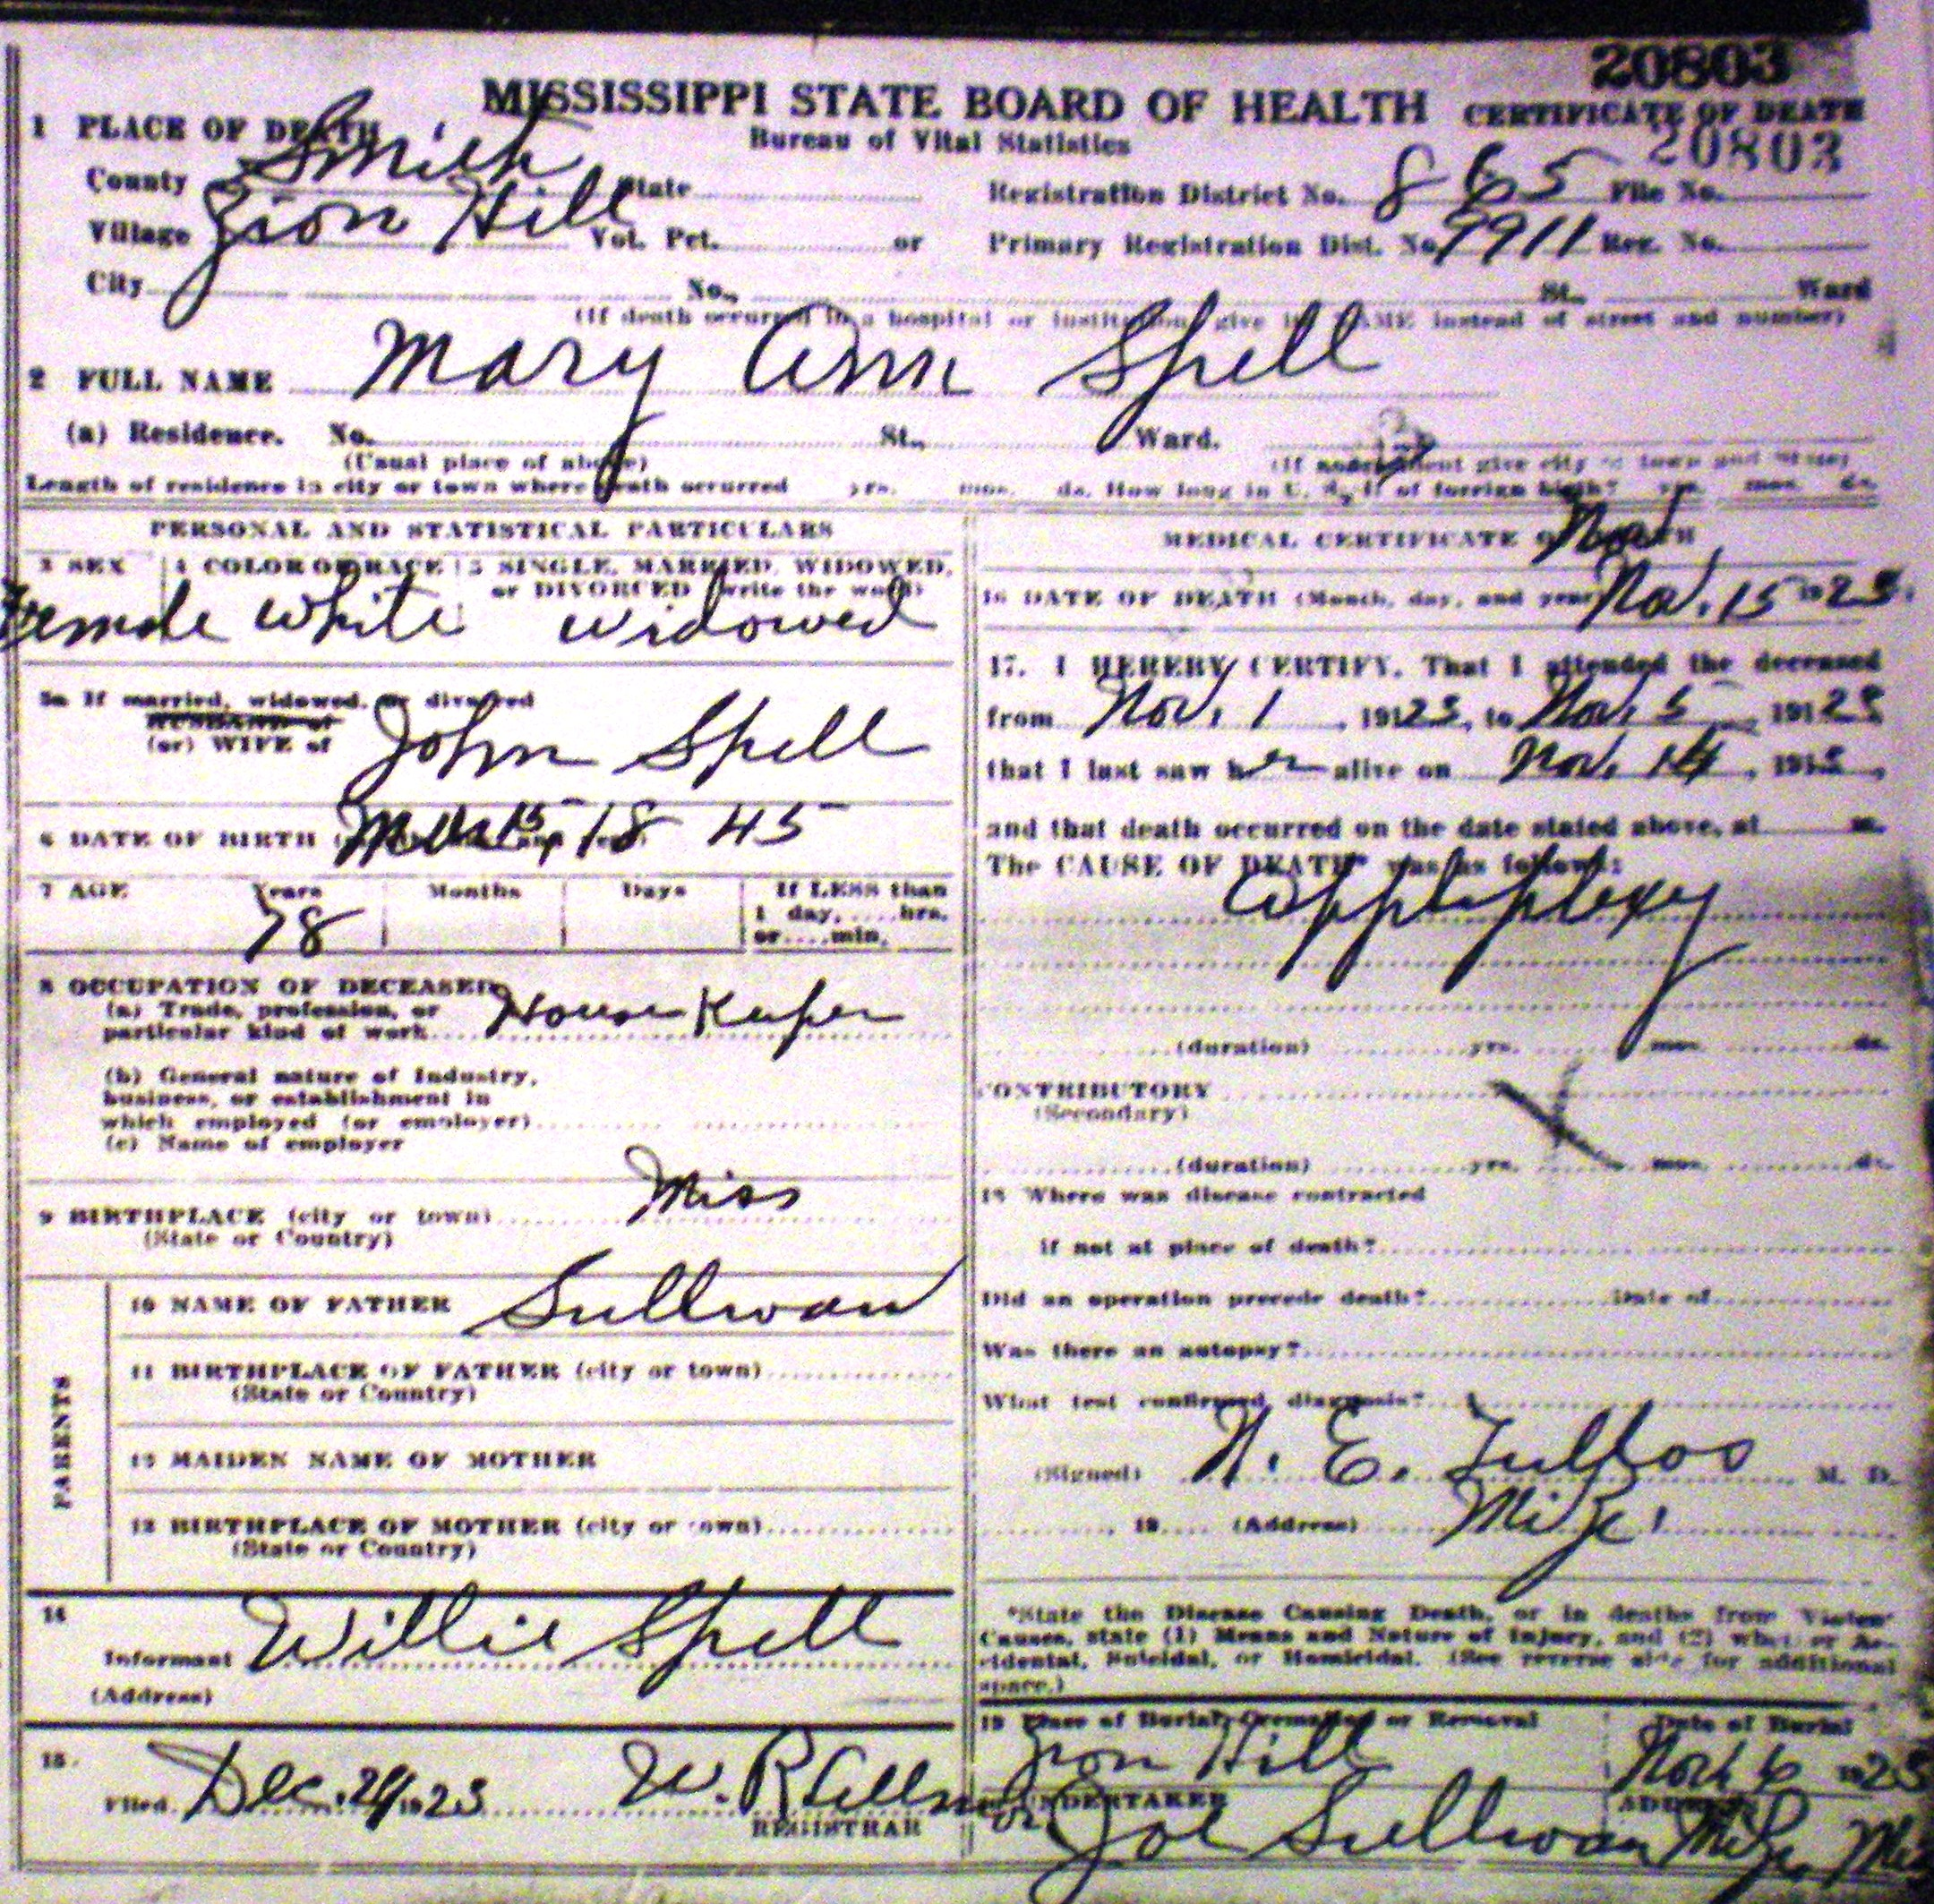 Mary Ann Spell Death Certificate